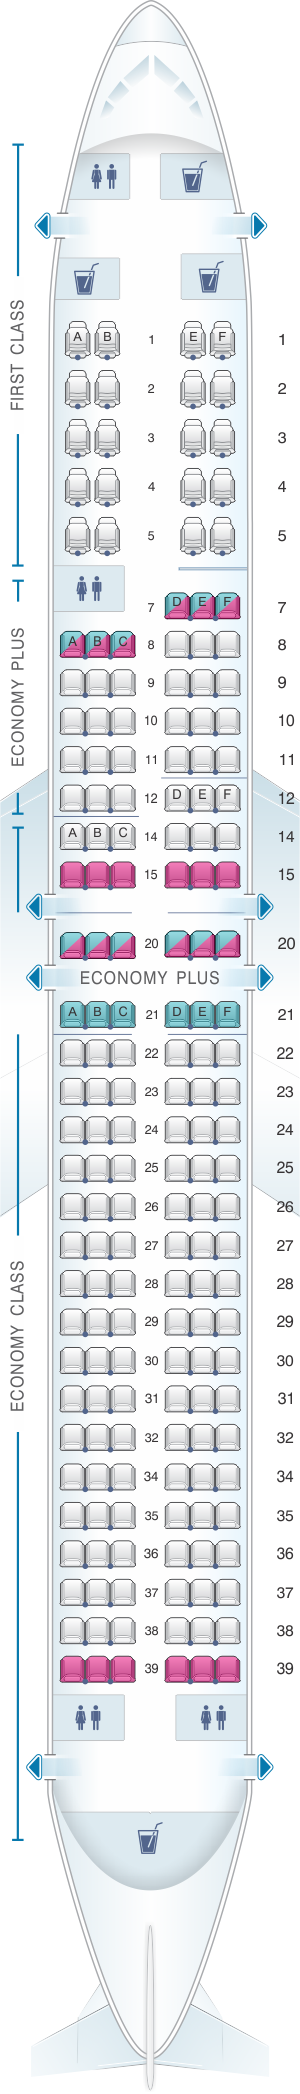 Seat map for United Airlines Boeing B737 900 - version 2